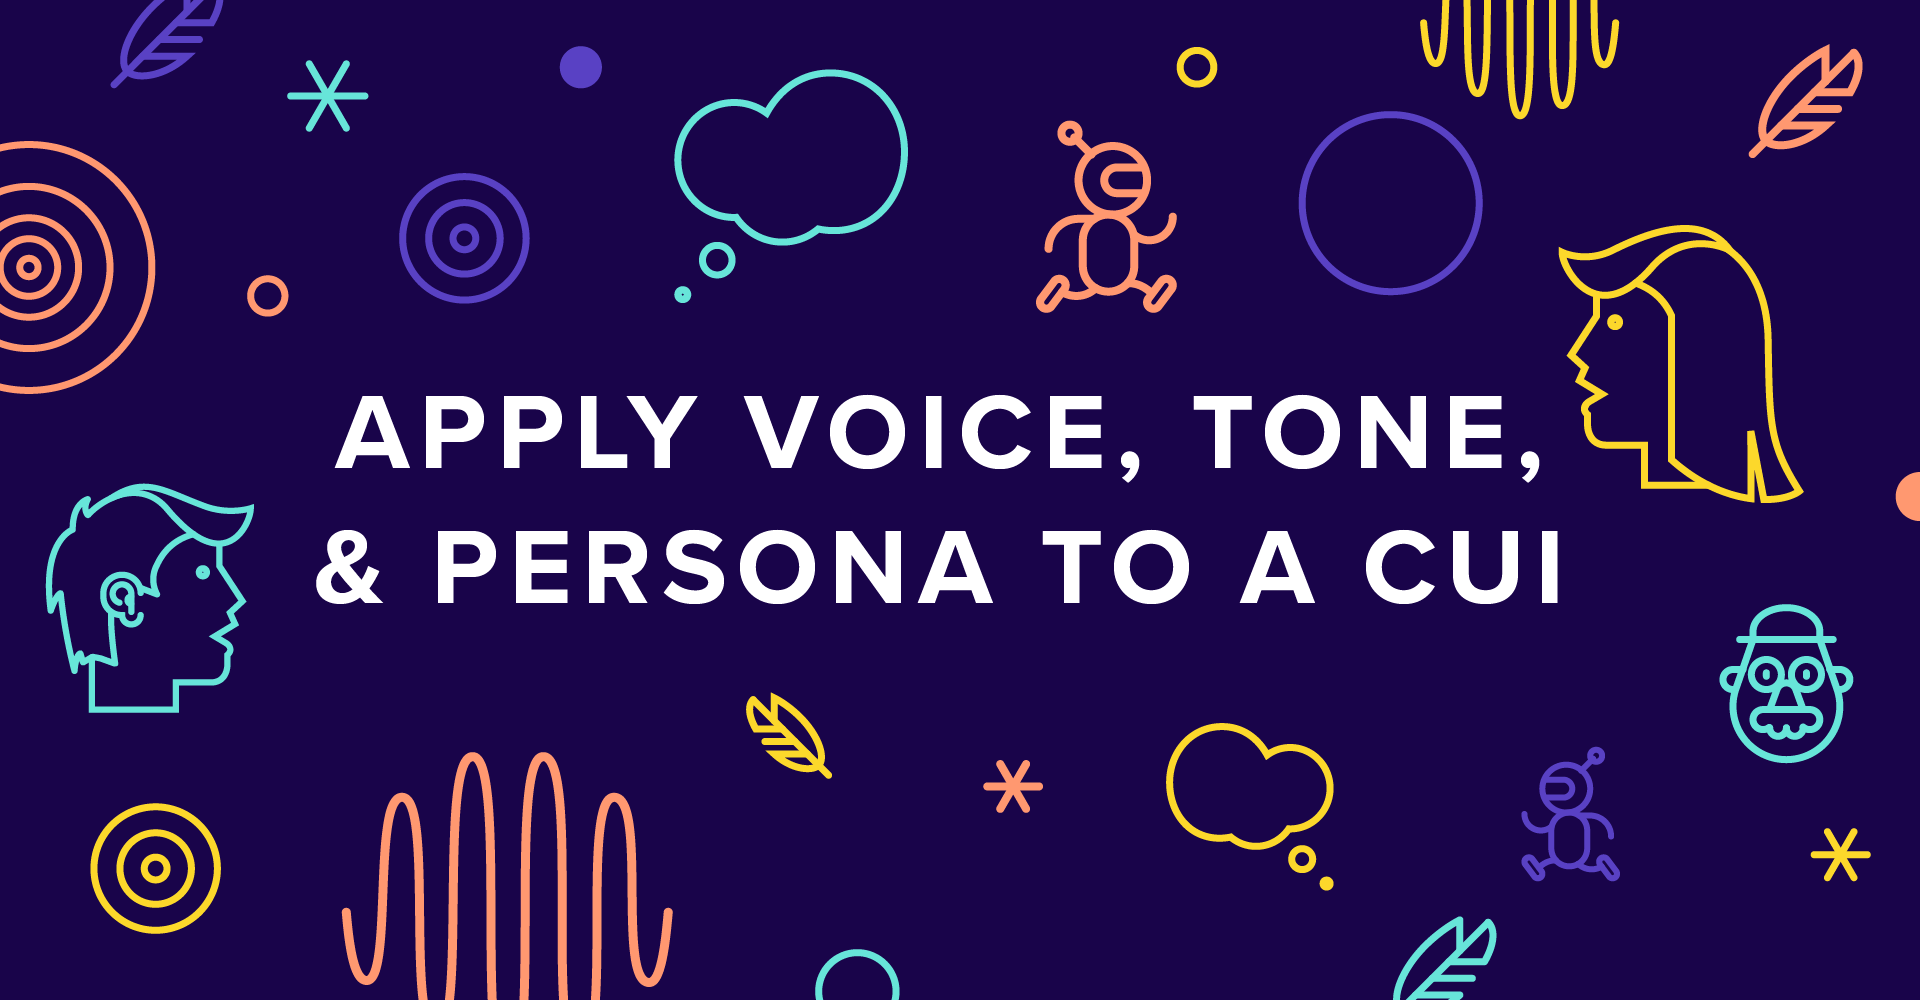 Branding Bots Part 3: Applying Voice, Tone, & Persona to a CUI